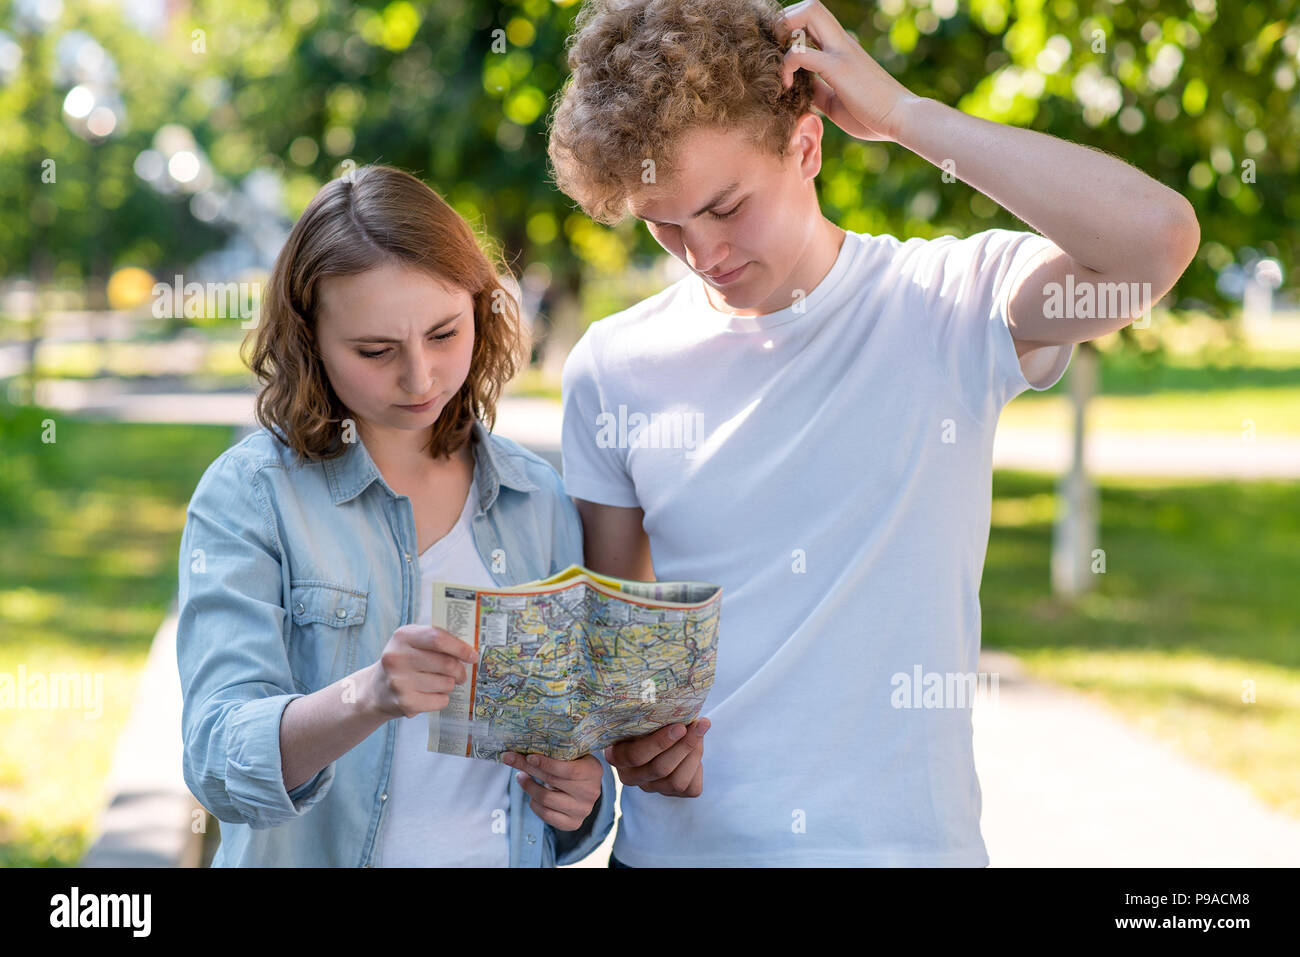 A guy with a girl in summer in the city on nature. In his hands holds a road map. Lost the direction. He does not know where to go. The concept of misunderstanding. He does not know where to go. - Stock Image